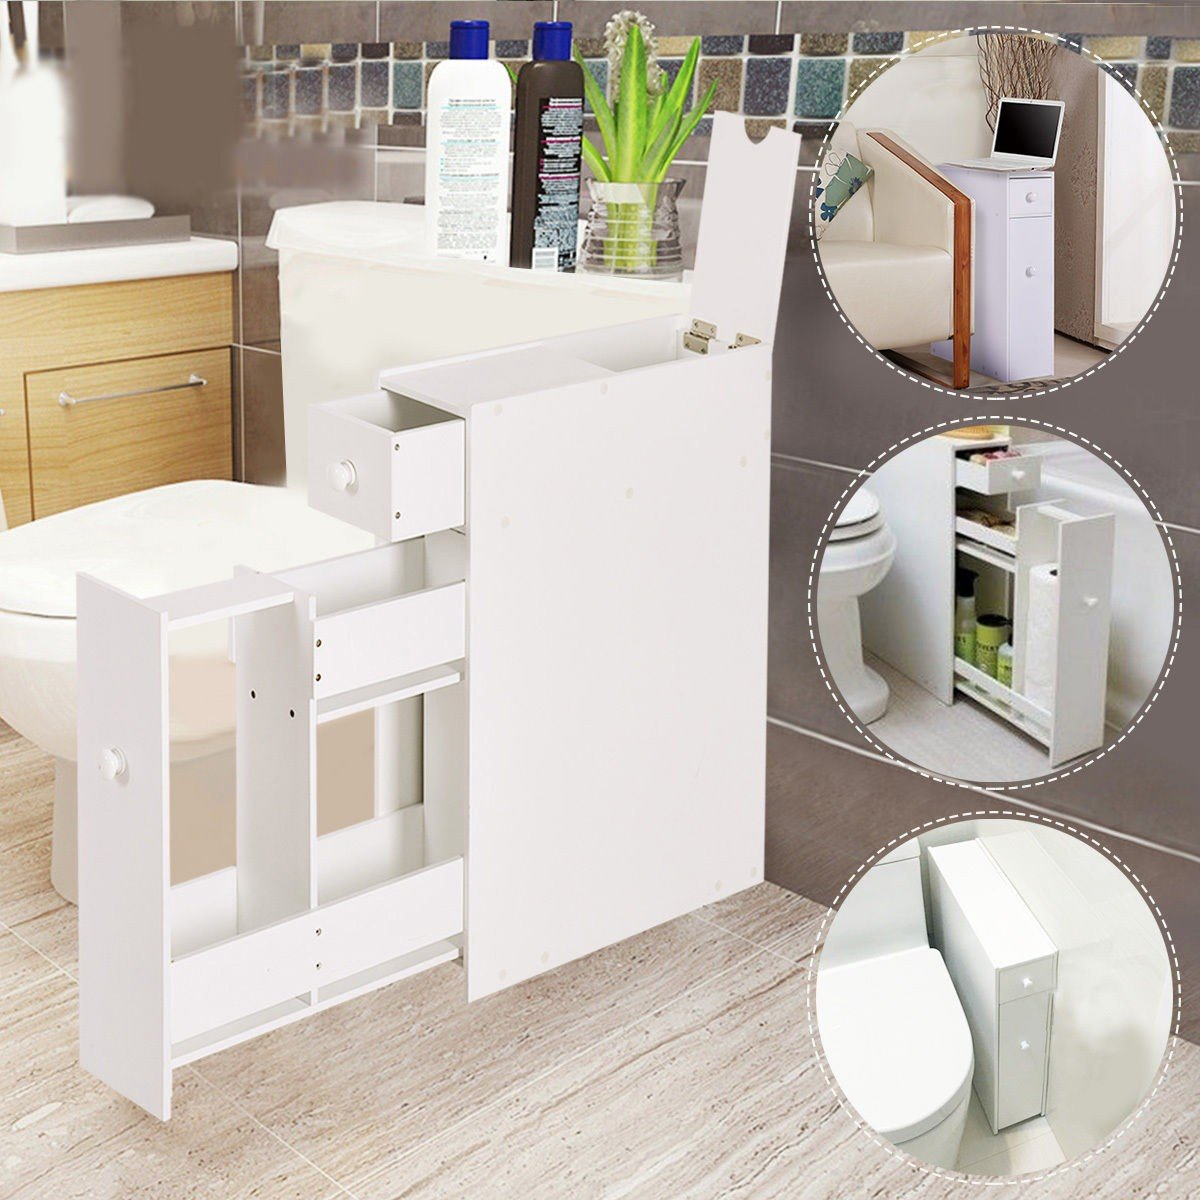 LordBee New White Bathroom Cabinet Space Saver Storage Organizer MDF Small Size Stylish Modern Nice Chic Decor Furniture Home Towels Shampoo Bottles by LordBee (Image #2)